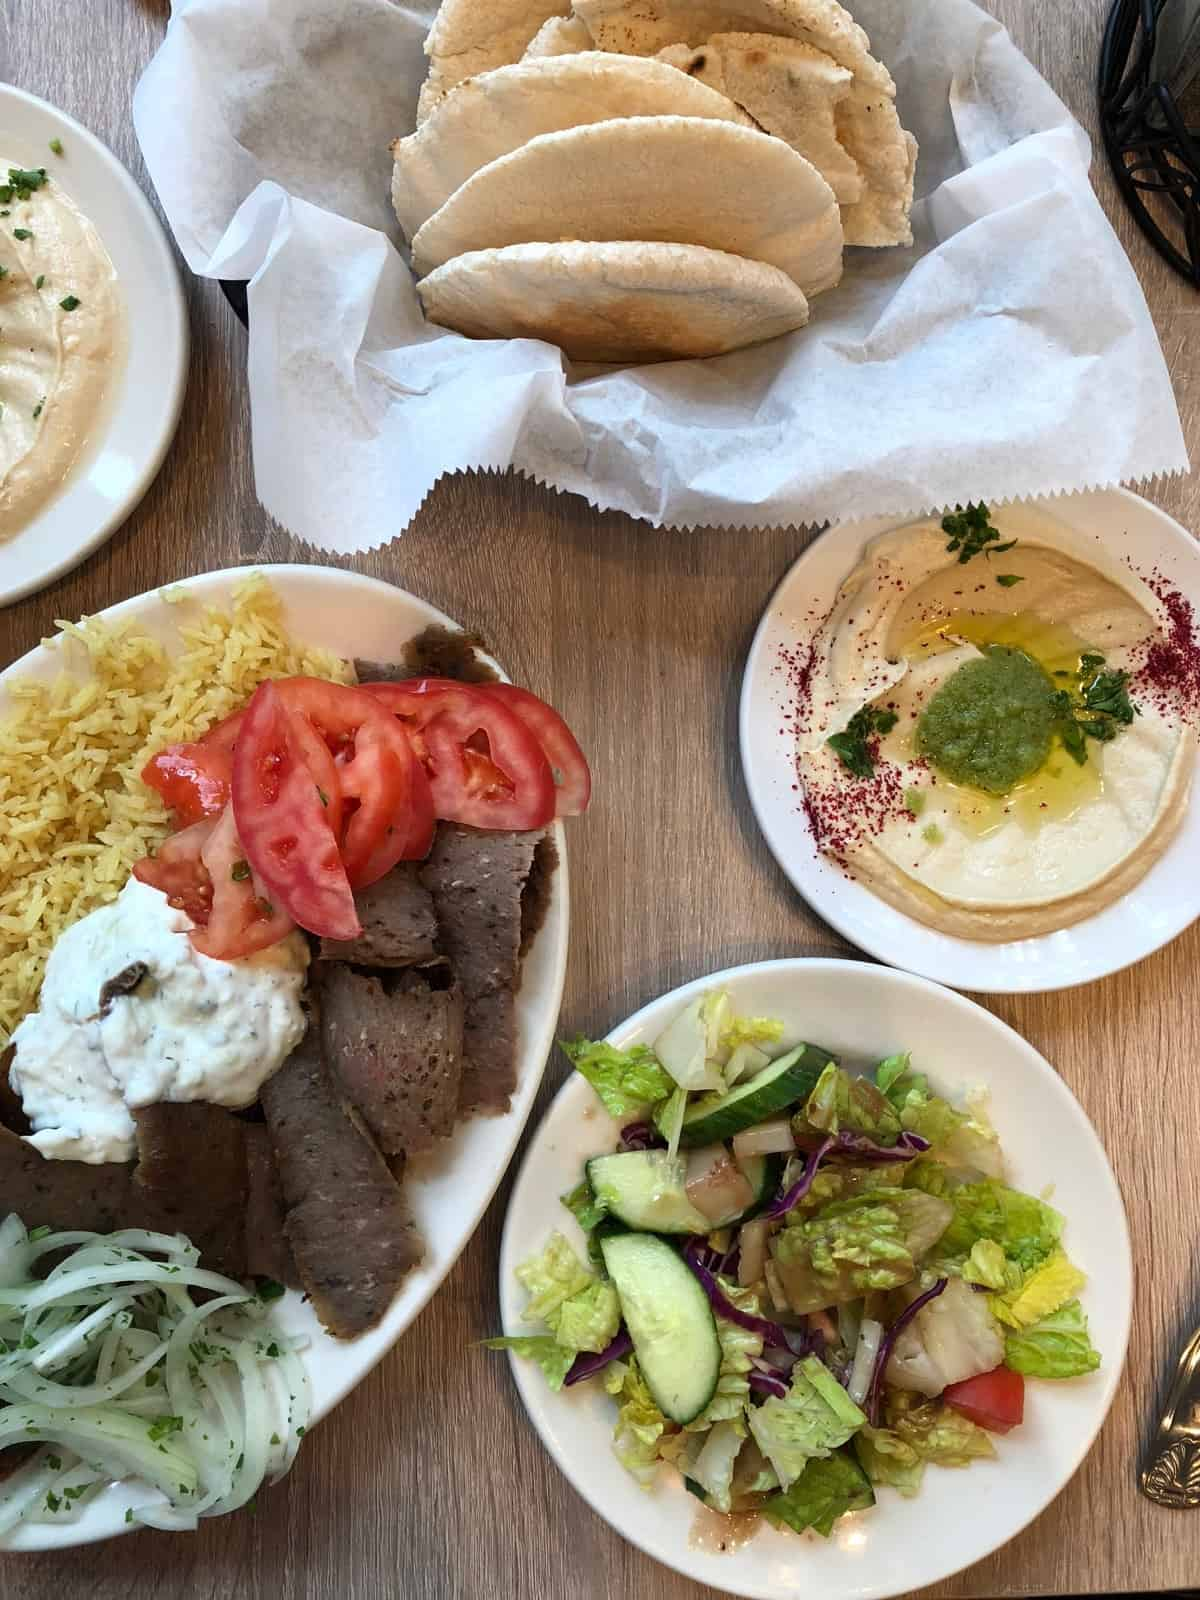 Big basket of pita, a gyro plate, plate of hummus, and a plate of greek salad at Middle Eastern Bakery and Grocery in Chicago, IL